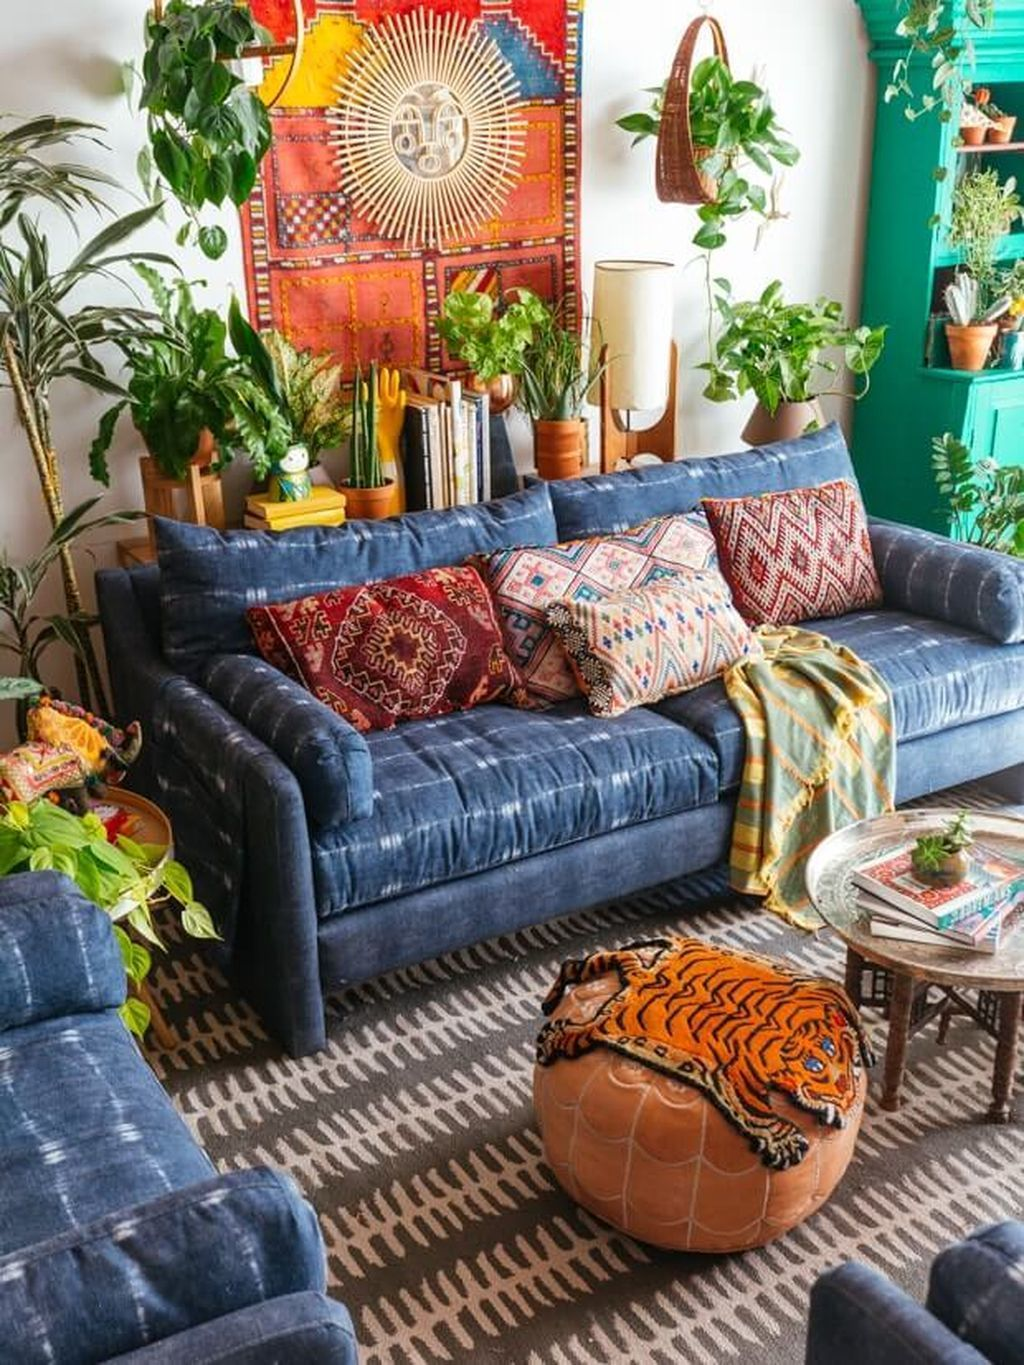 Hippie House Ideas   Hippie Decoration Is Flexible Design That Can Be  Applied In The Several Furniture Choosing. Designing The Hippie Decoration  In The Room ...